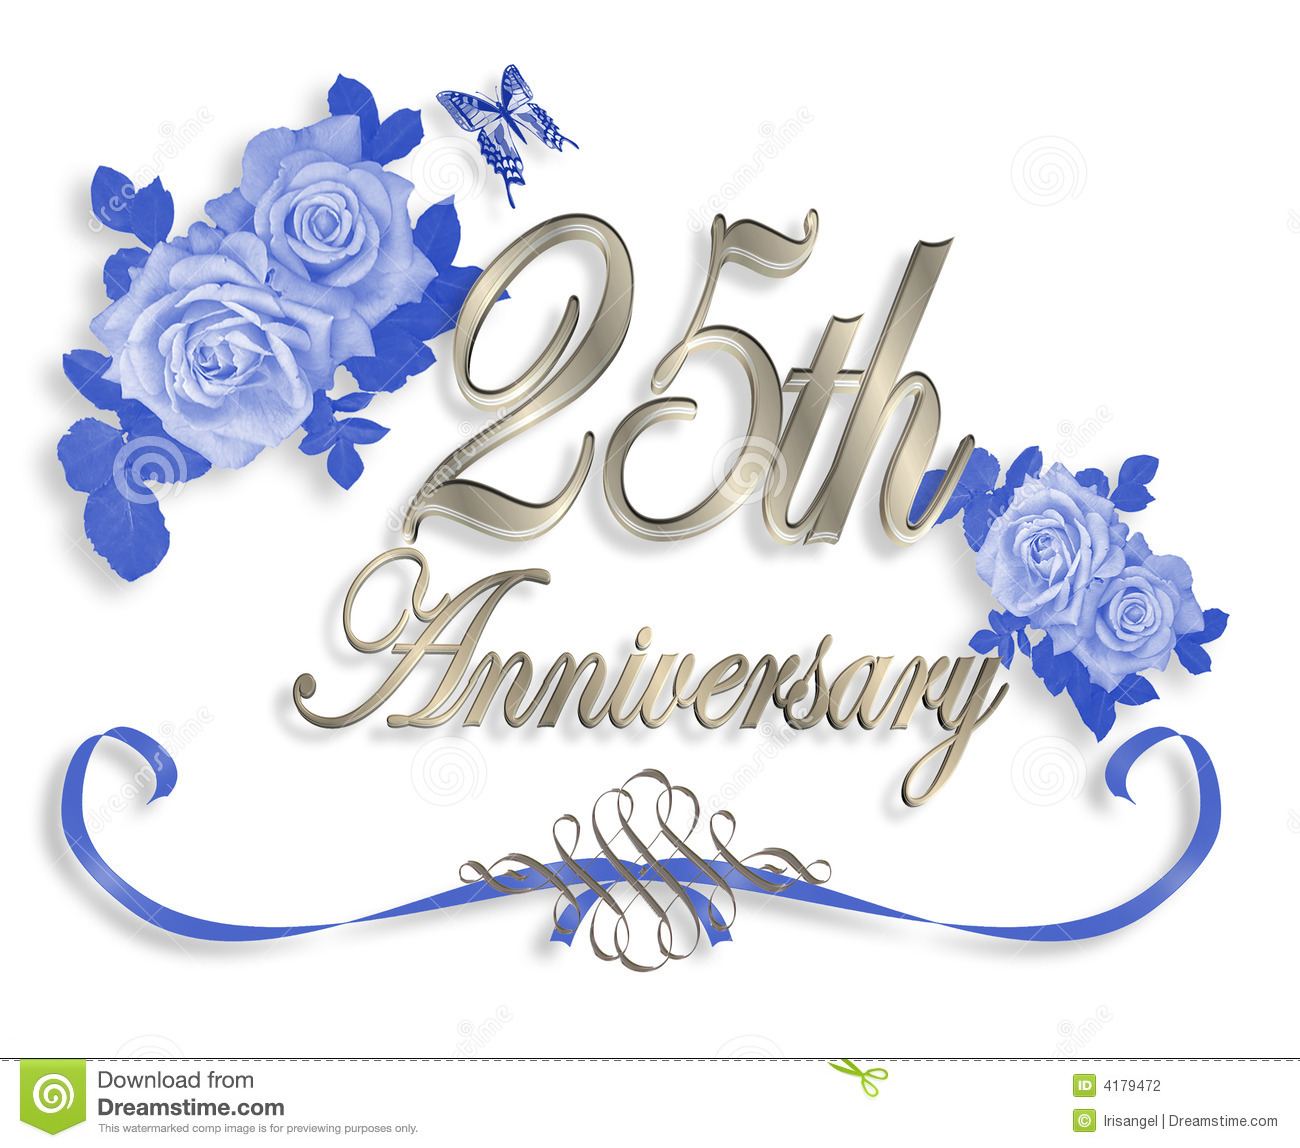 Happy 25th anniversary clipart picture library download 25th wedding anniversary clip art - ClipartFest picture library download